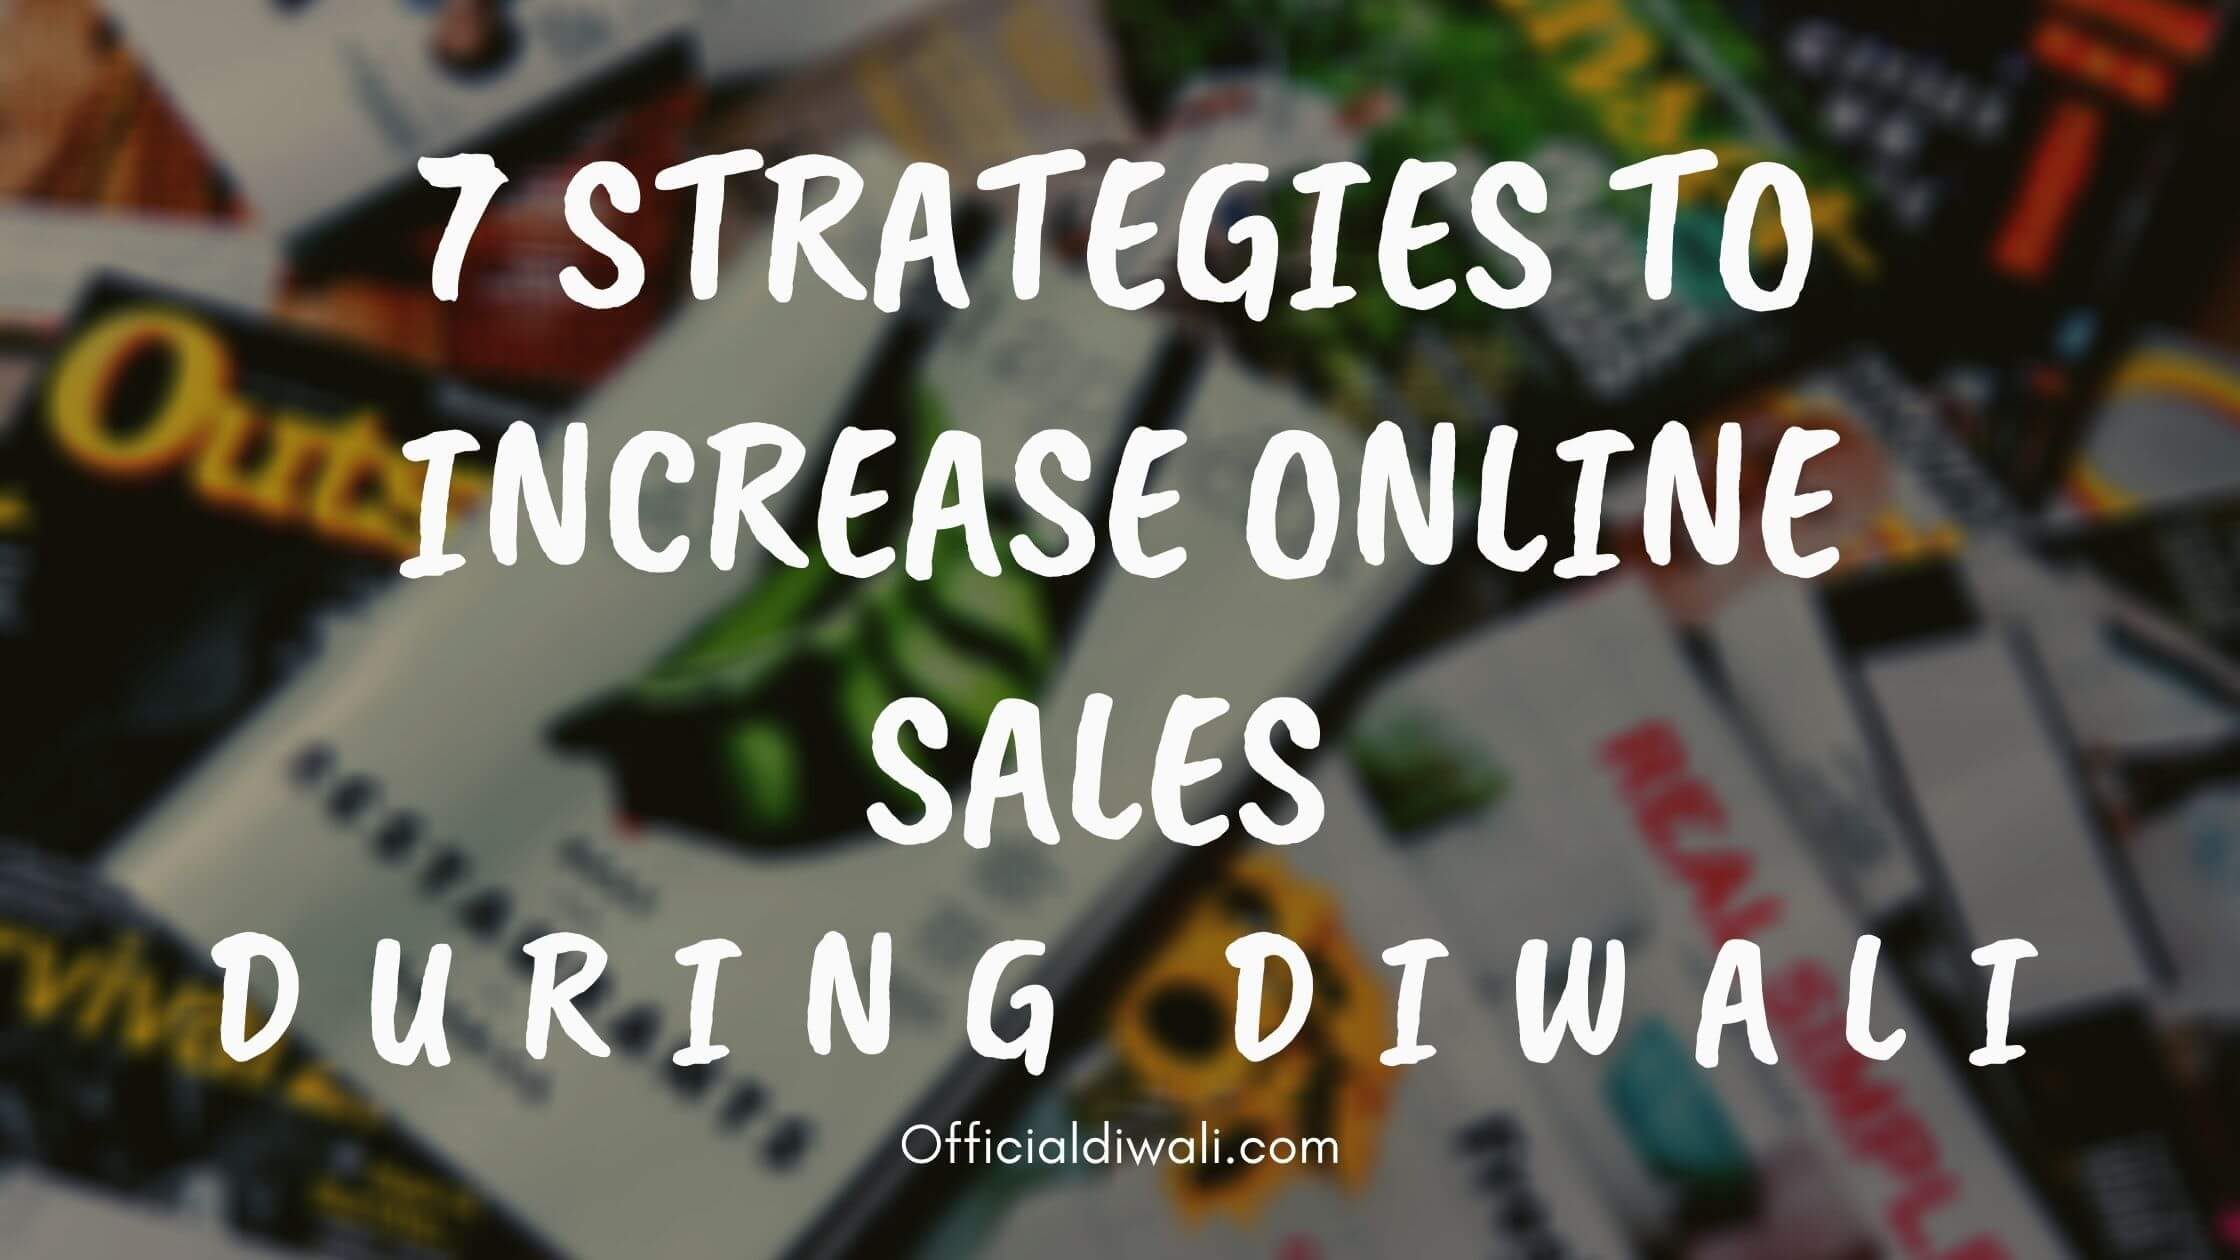 7 Strategies to Increase Online Sales During Diwali 2020